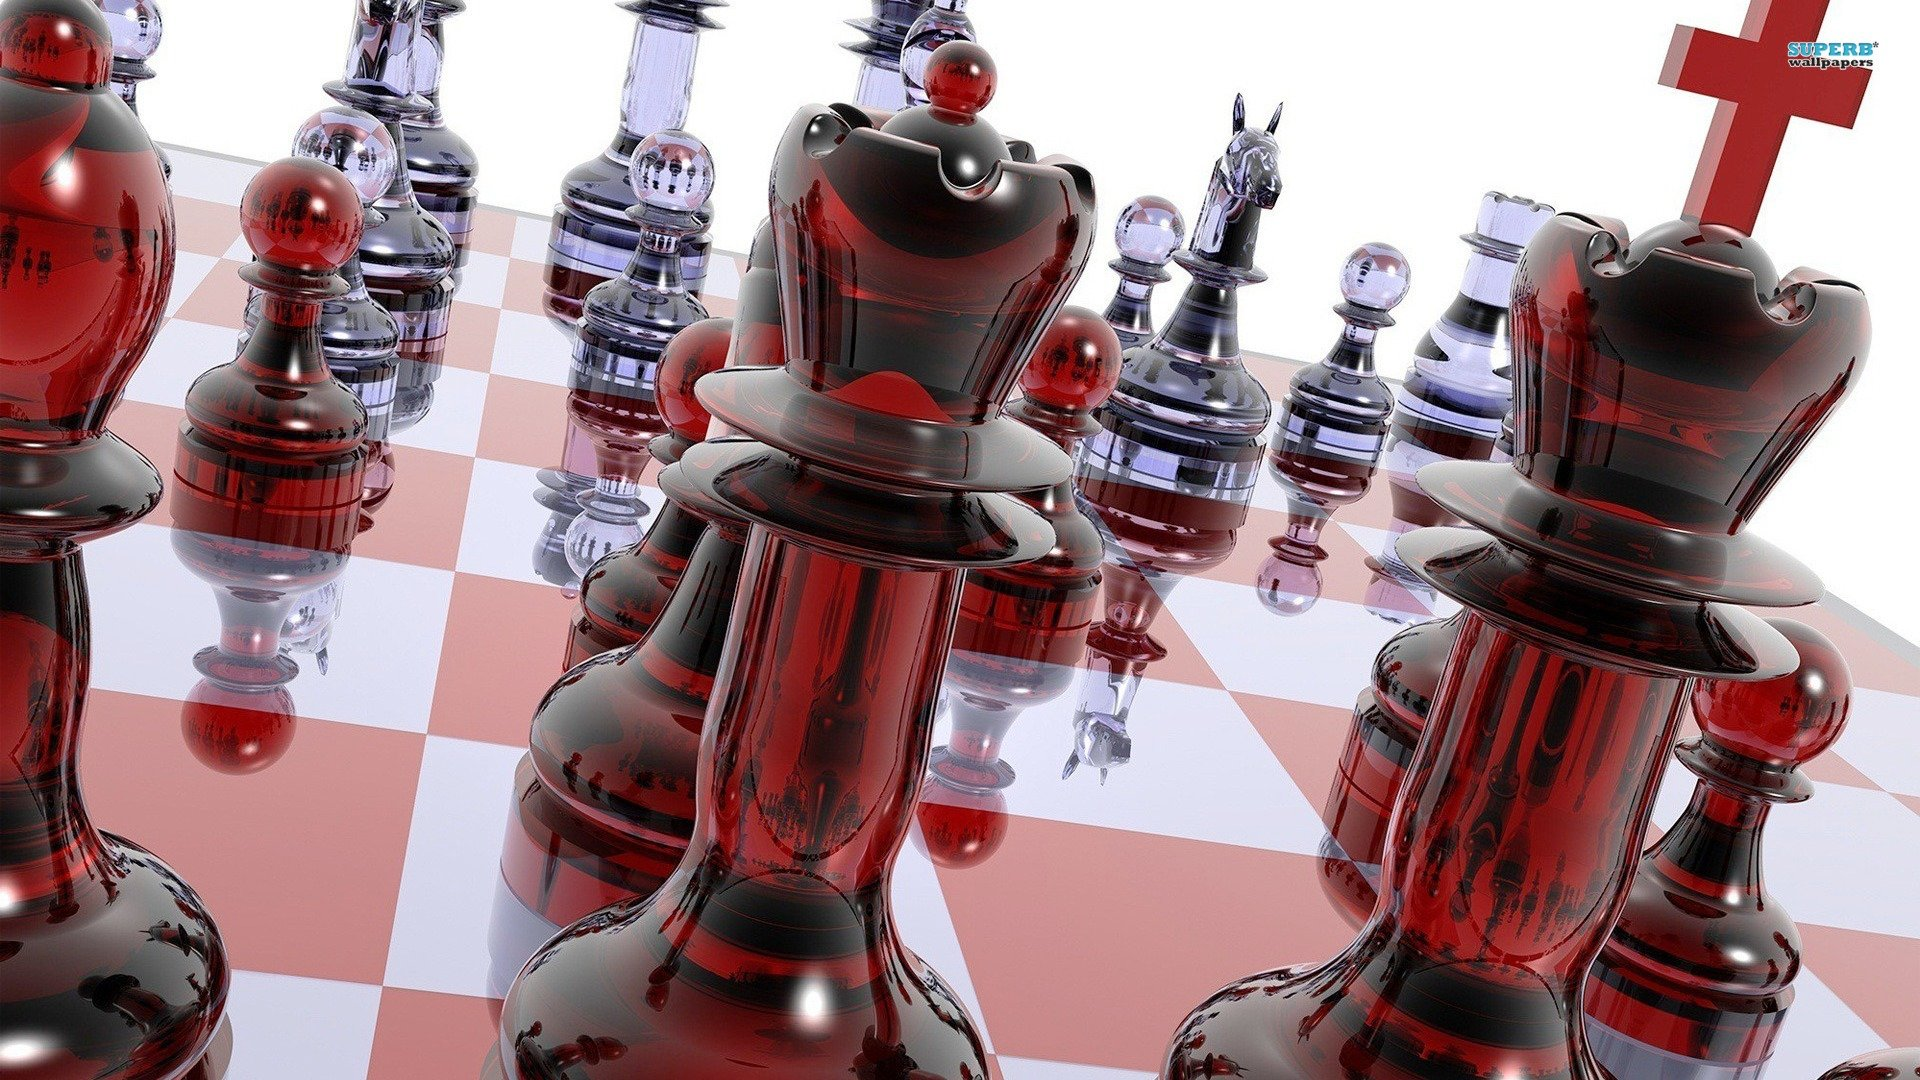 Chess Wallpaper Chess Game Hd Wallpapers: Chess Wallpapers 1920x1080 Full HD (1080p) Desktop Backgrounds